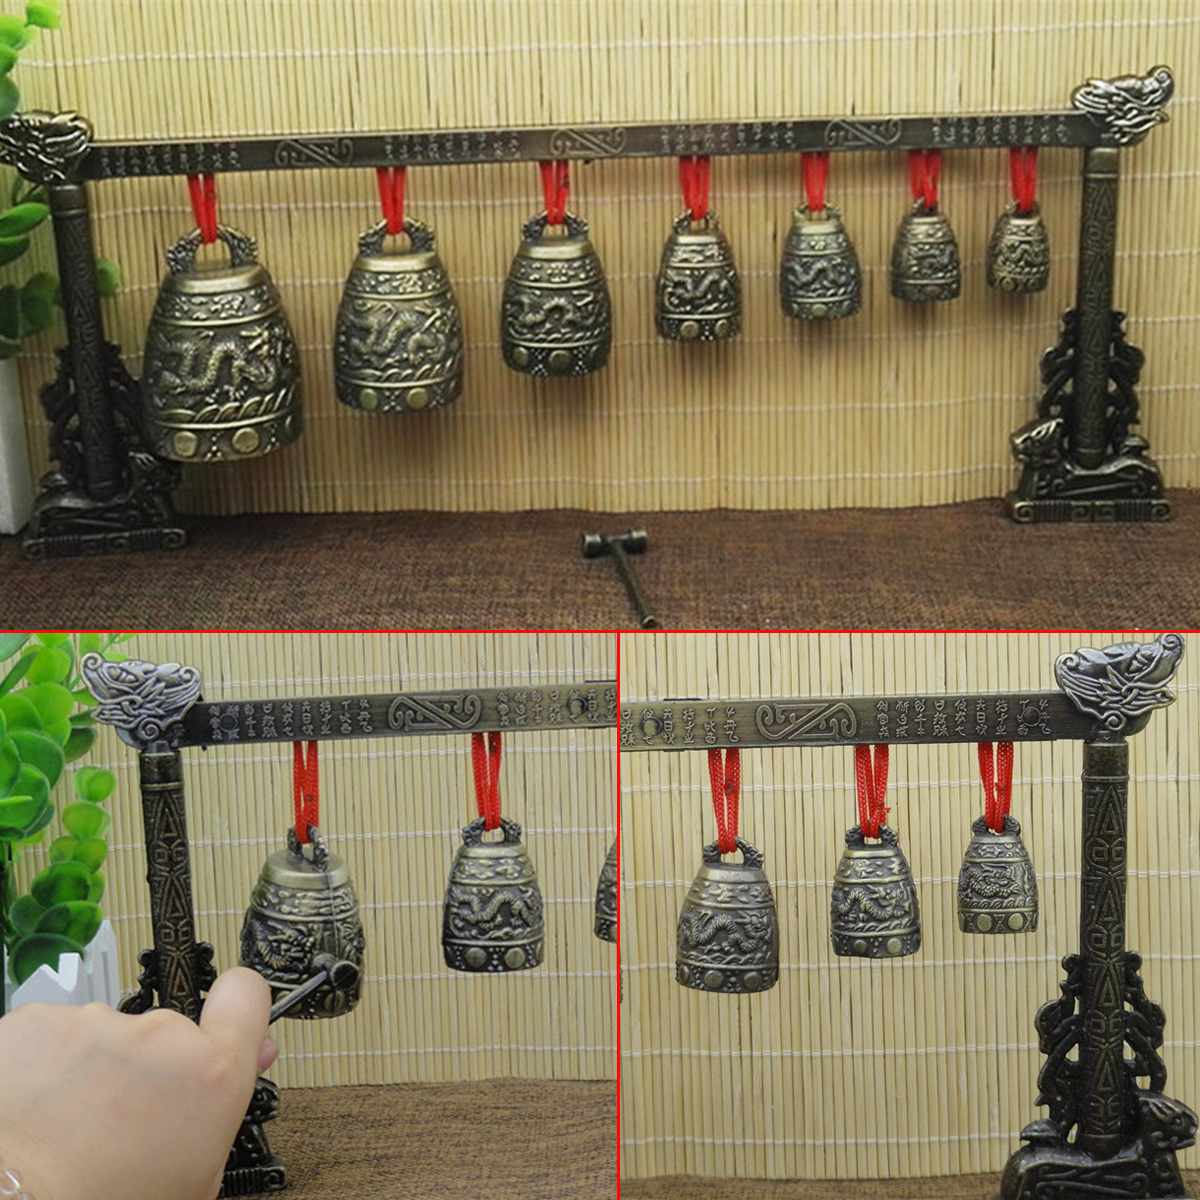 Chinese Glockenspiel Chimes Brass Bells Bronze Ware Ancient Chinese Mini Musical Instruments 7 Round Copper Bells And Crandall